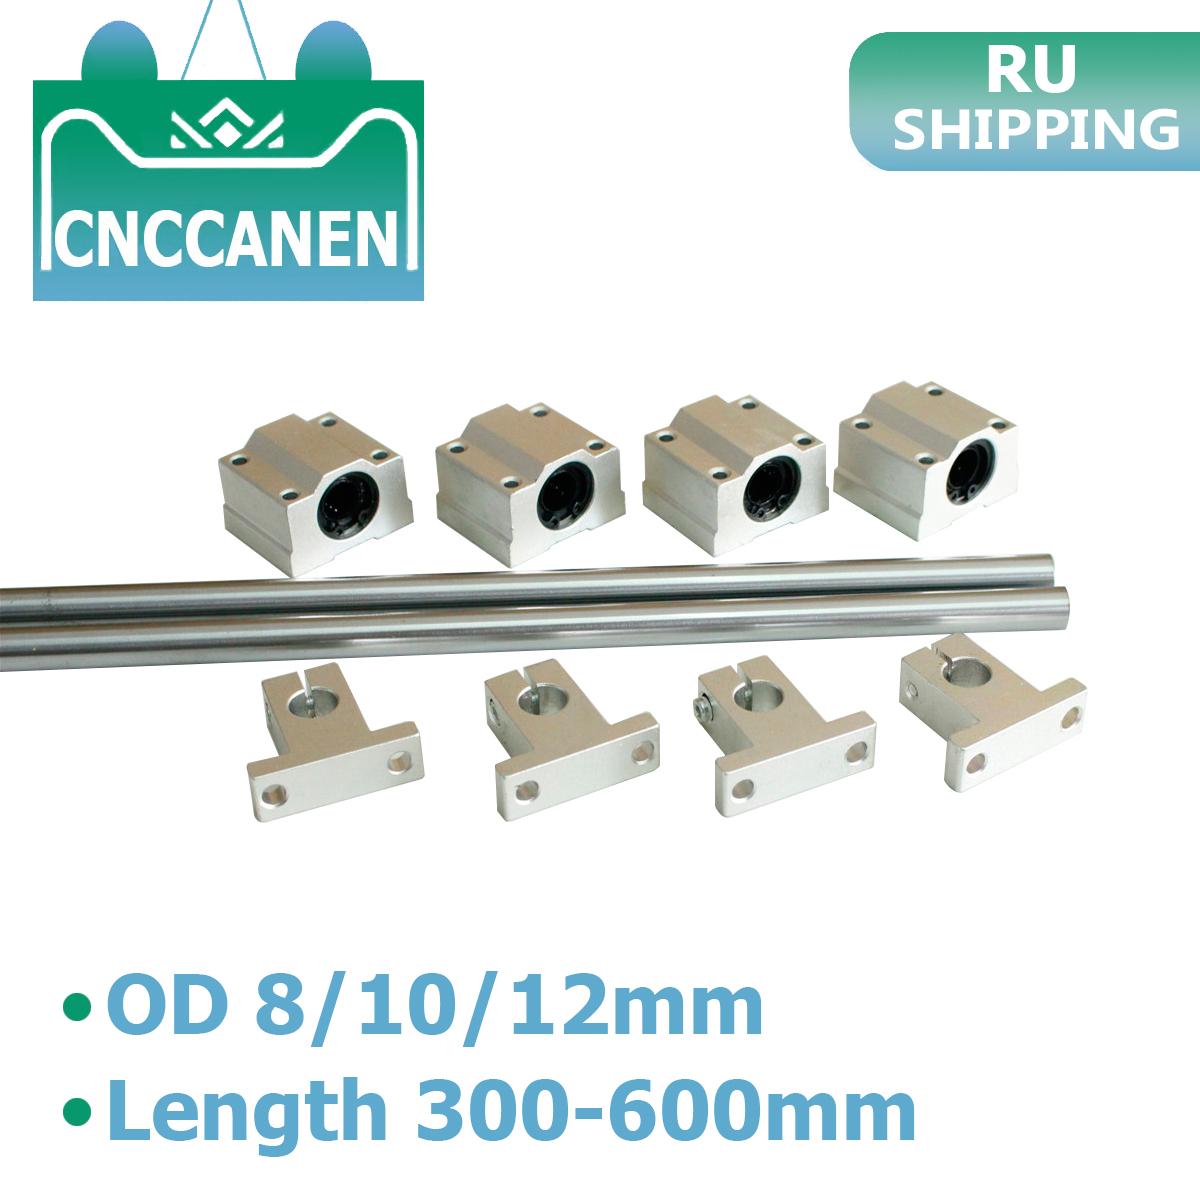 Optical Axis 8/10/12mm Linear Shaft Rail + SK8/10/12 Linear Bearing Shaft Support + SCS8/10/12UU Linear Motion Slide Block CNC